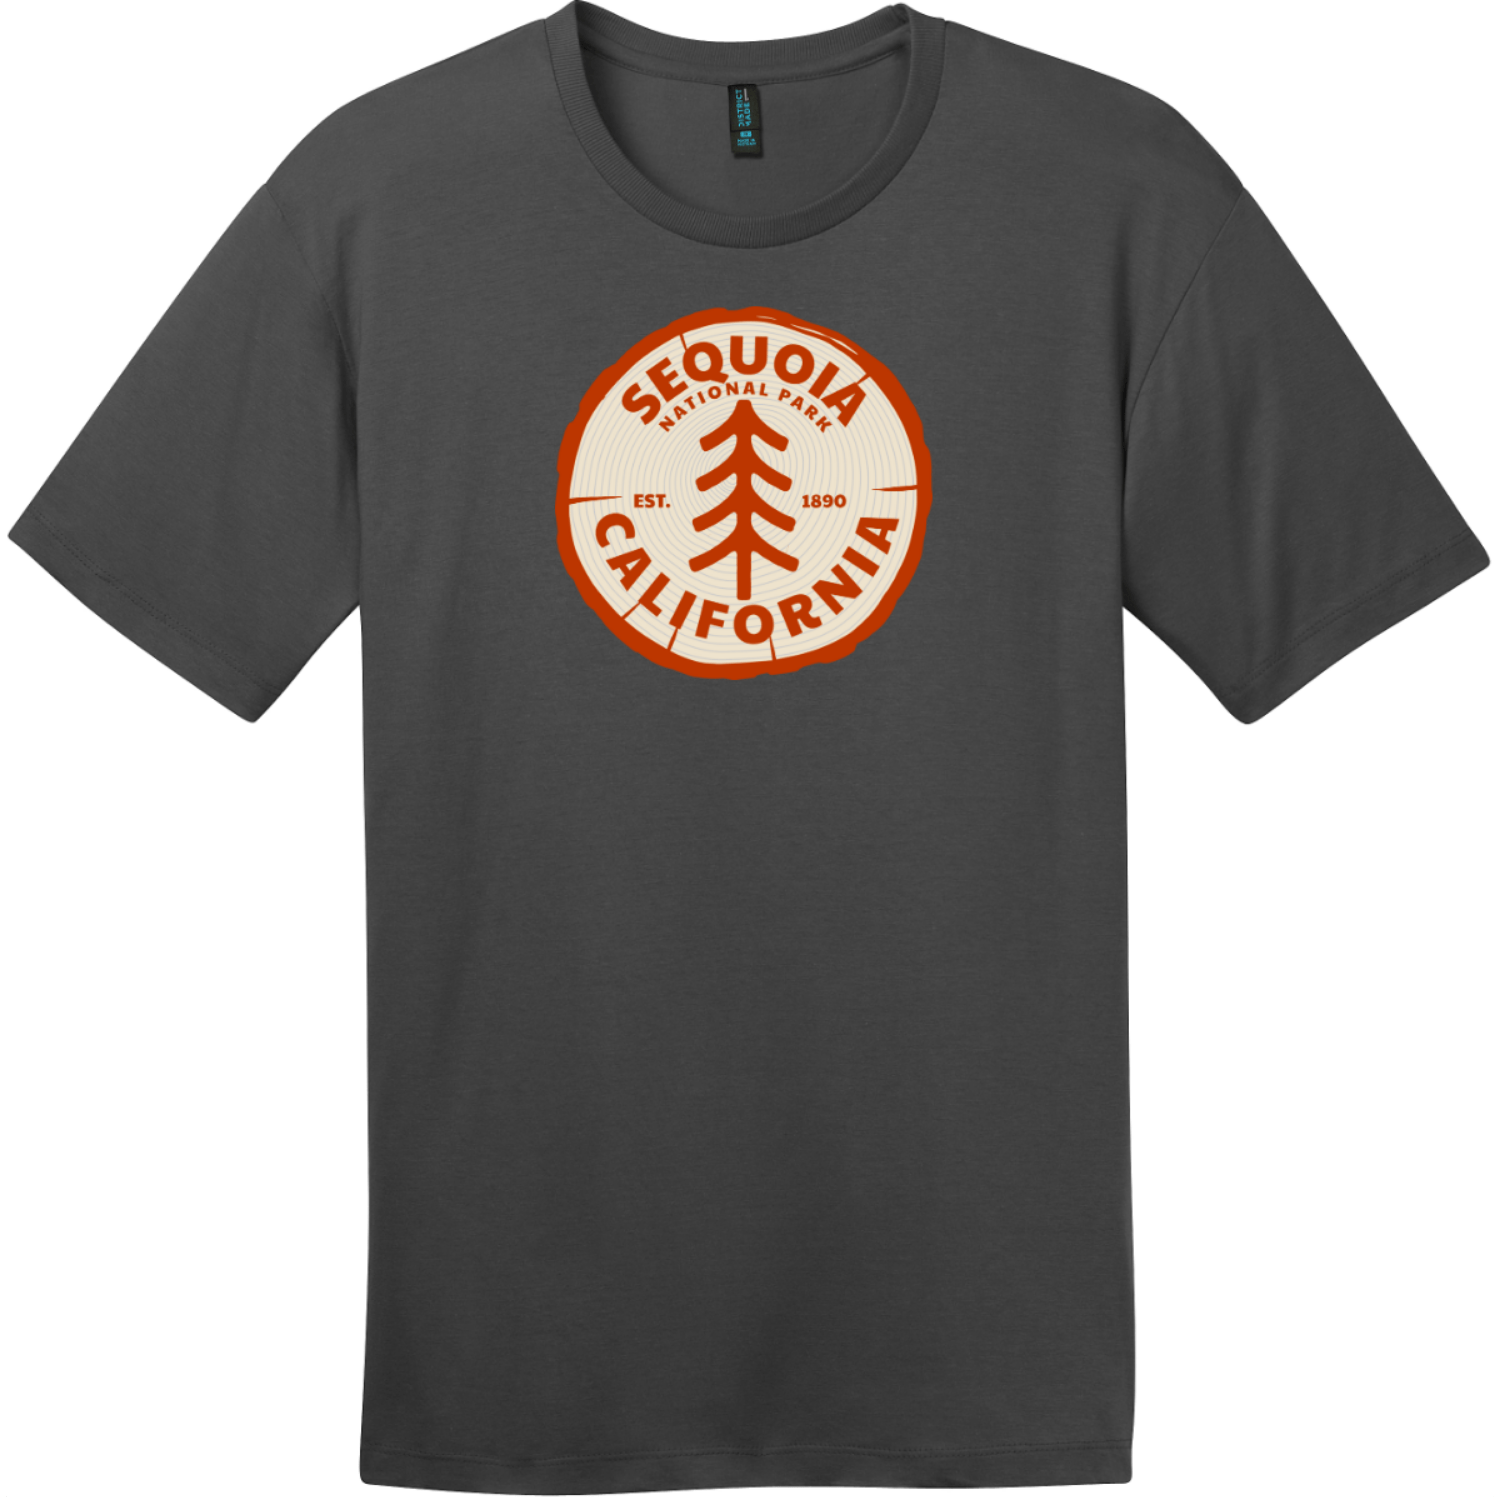 Sequoia National Park California Tree T-Shirt Charcoal District Perfect Weight Tee DT104